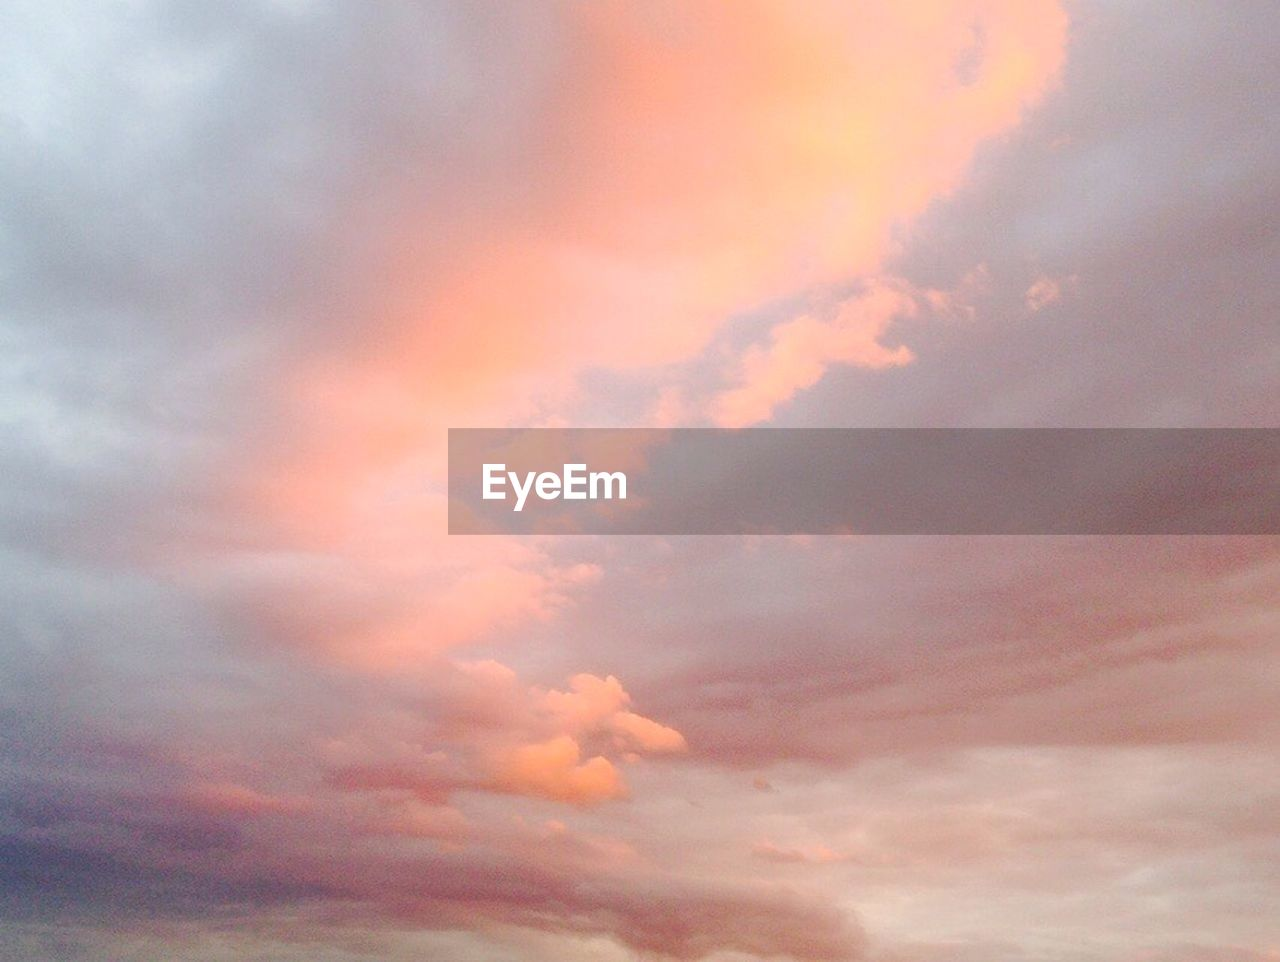 cloud - sky, beauty in nature, sky, sunset, nature, dramatic sky, cloudscape, sky only, atmospheric mood, scenics, majestic, backgrounds, low angle view, tranquility, tranquil scene, no people, weather, awe, outdoors, idyllic, full frame, abstract, ethereal, multi colored, storm cloud, day